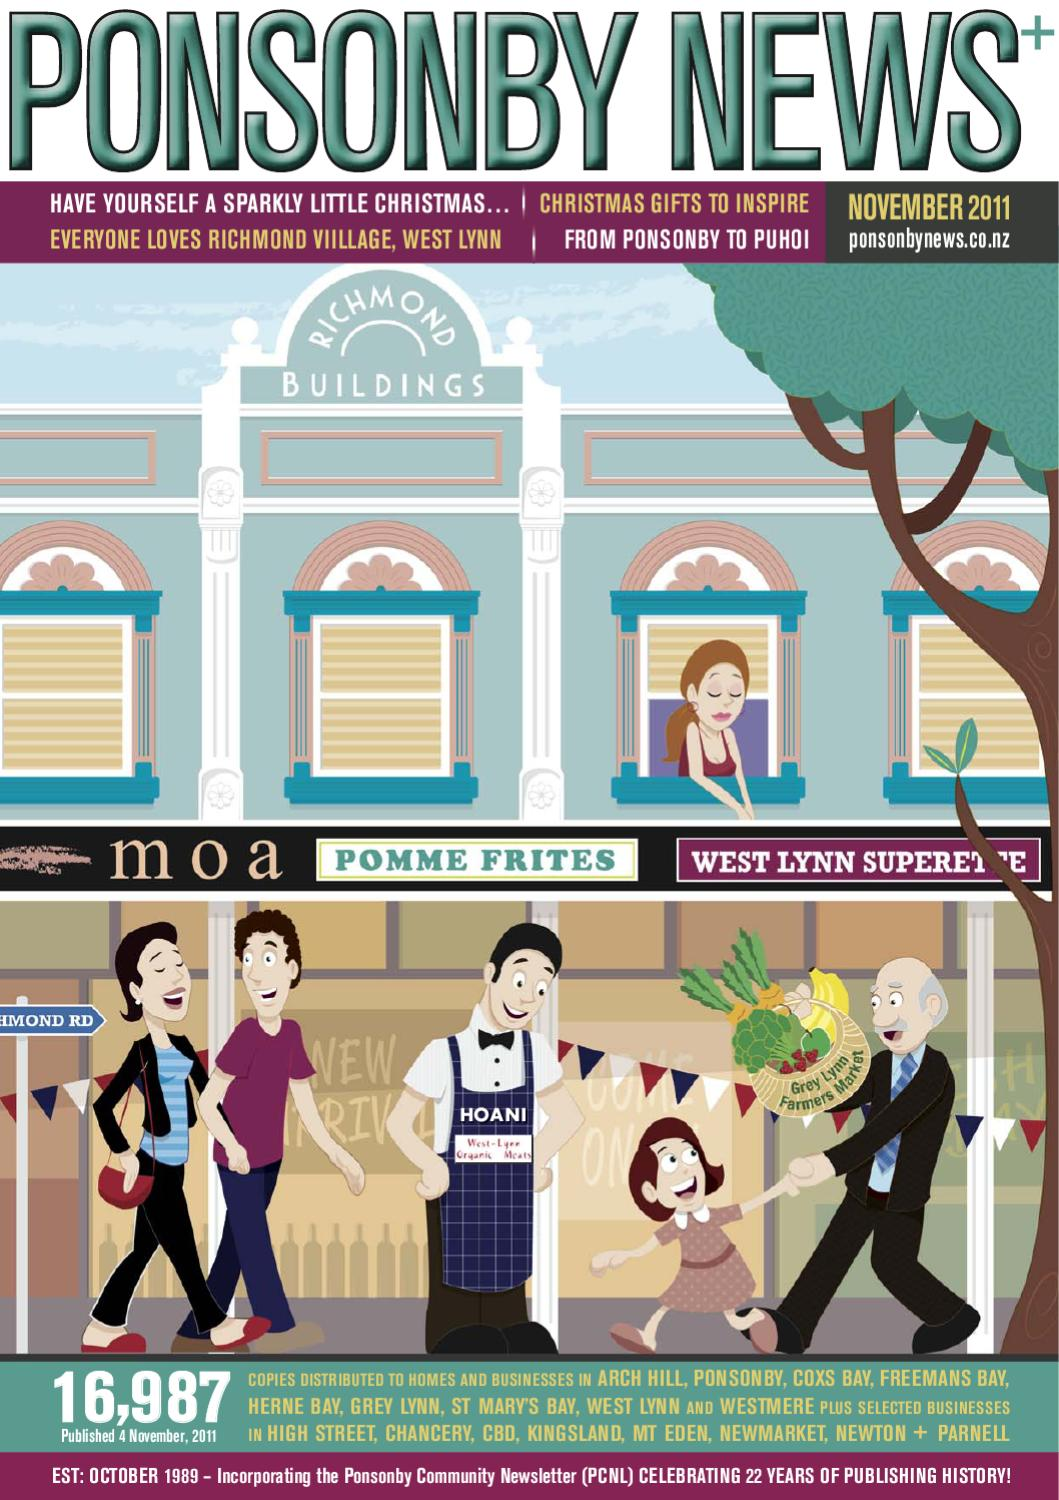 456c75f2f7725 NOVEMBER 11 - Ponsonby News by Ponsonby News - issuu